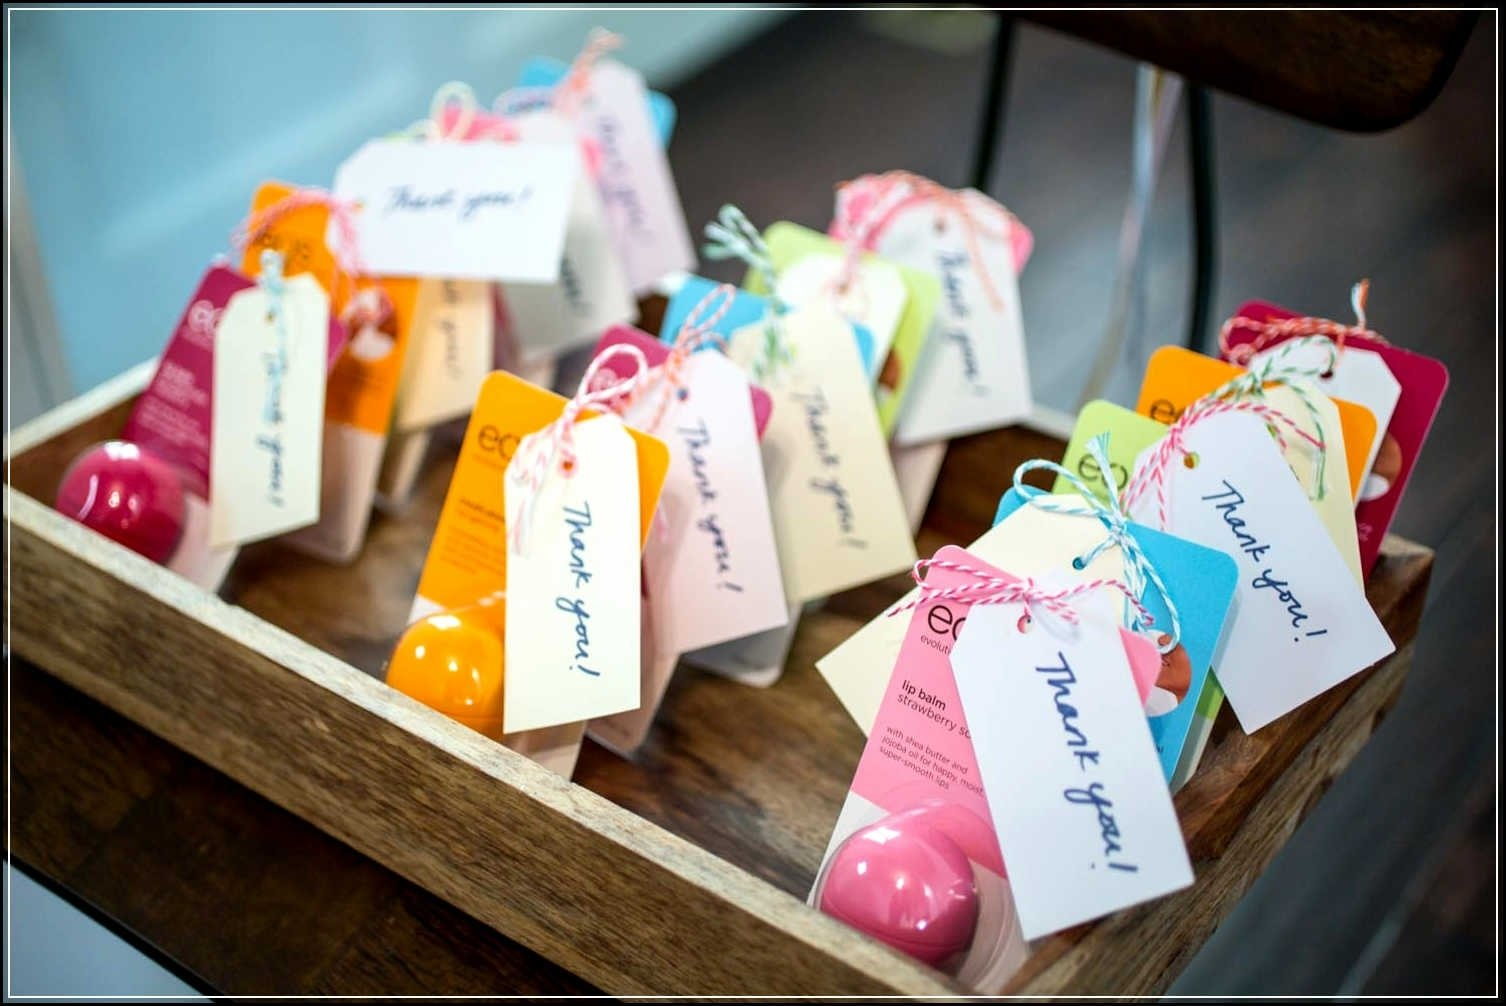 10 Most Recommended Ideas For A Bridal Shower Gift bridal shower gift ideas for games inspiring bridal shower ideas